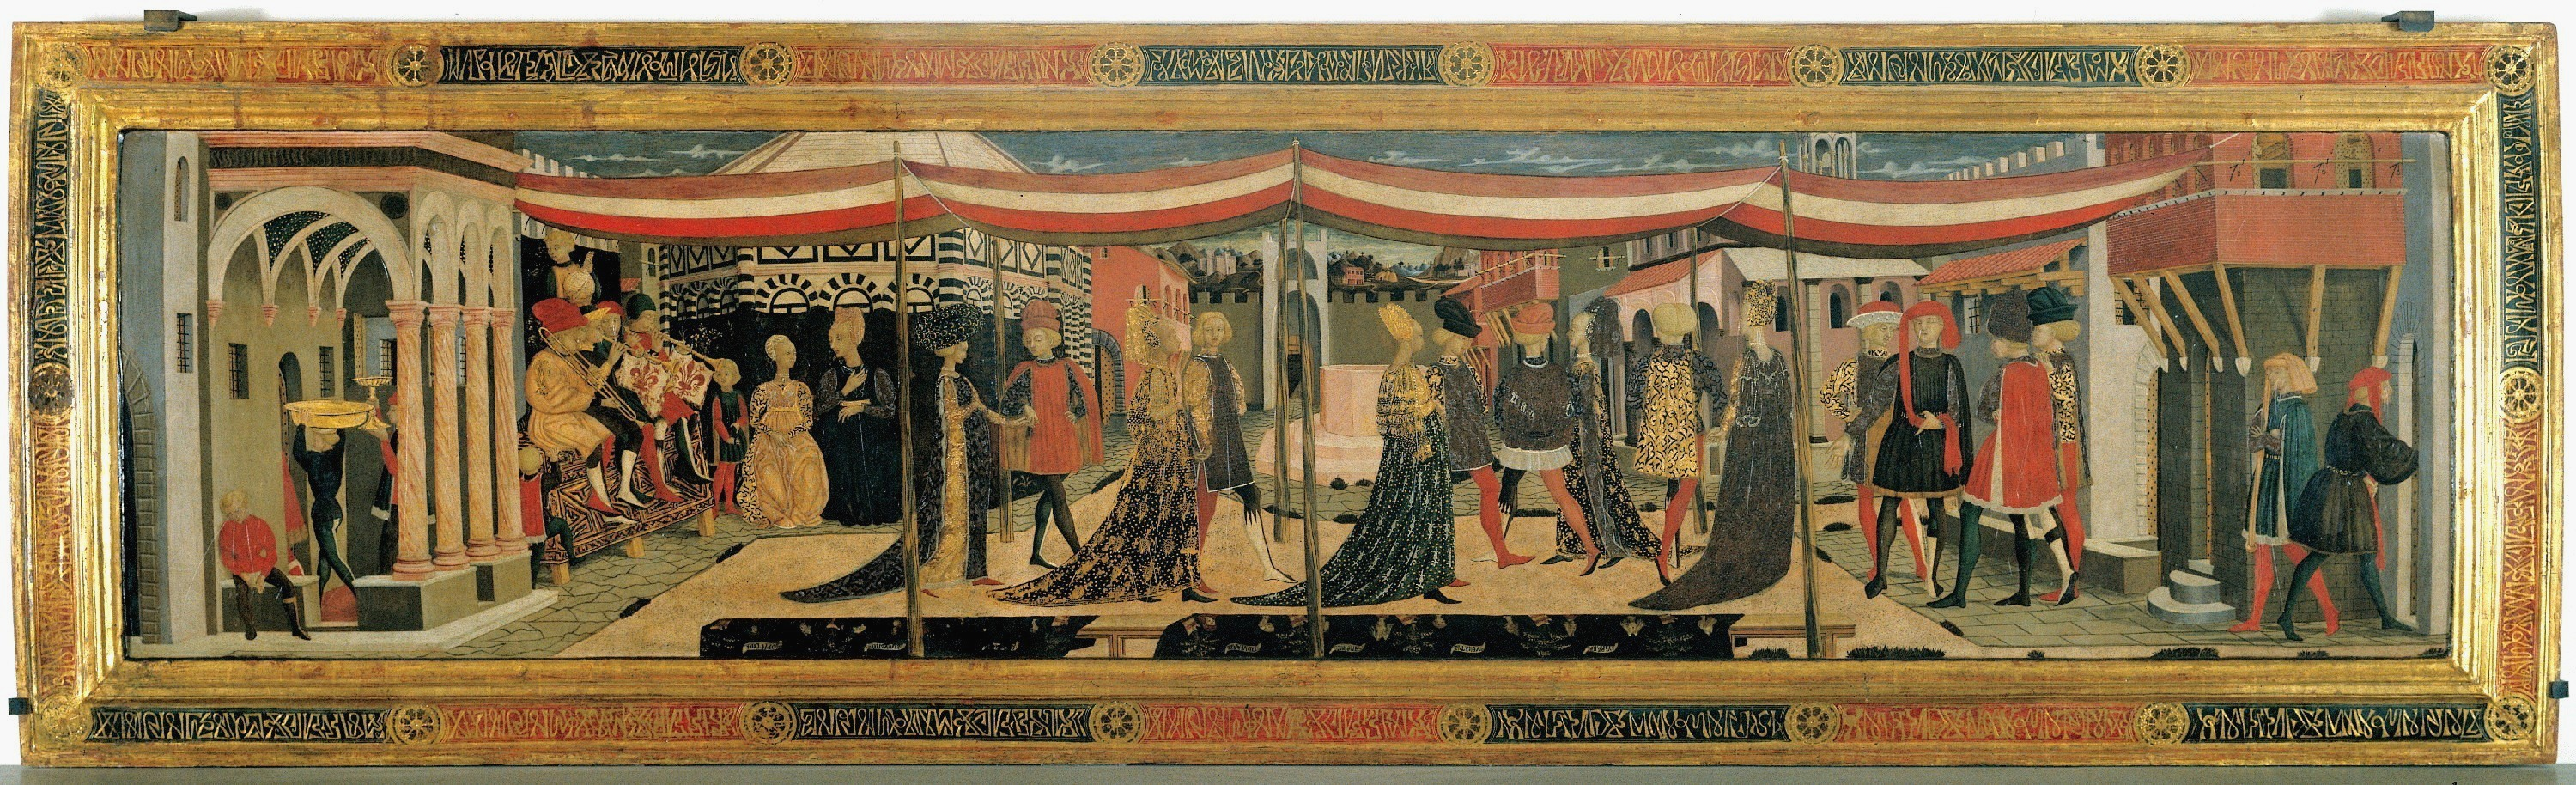 A Mid Fifth Century Painted Panel Probably To Decorate Bedchamber Depicts The Marriage Procession In Public Setting Of Piazza